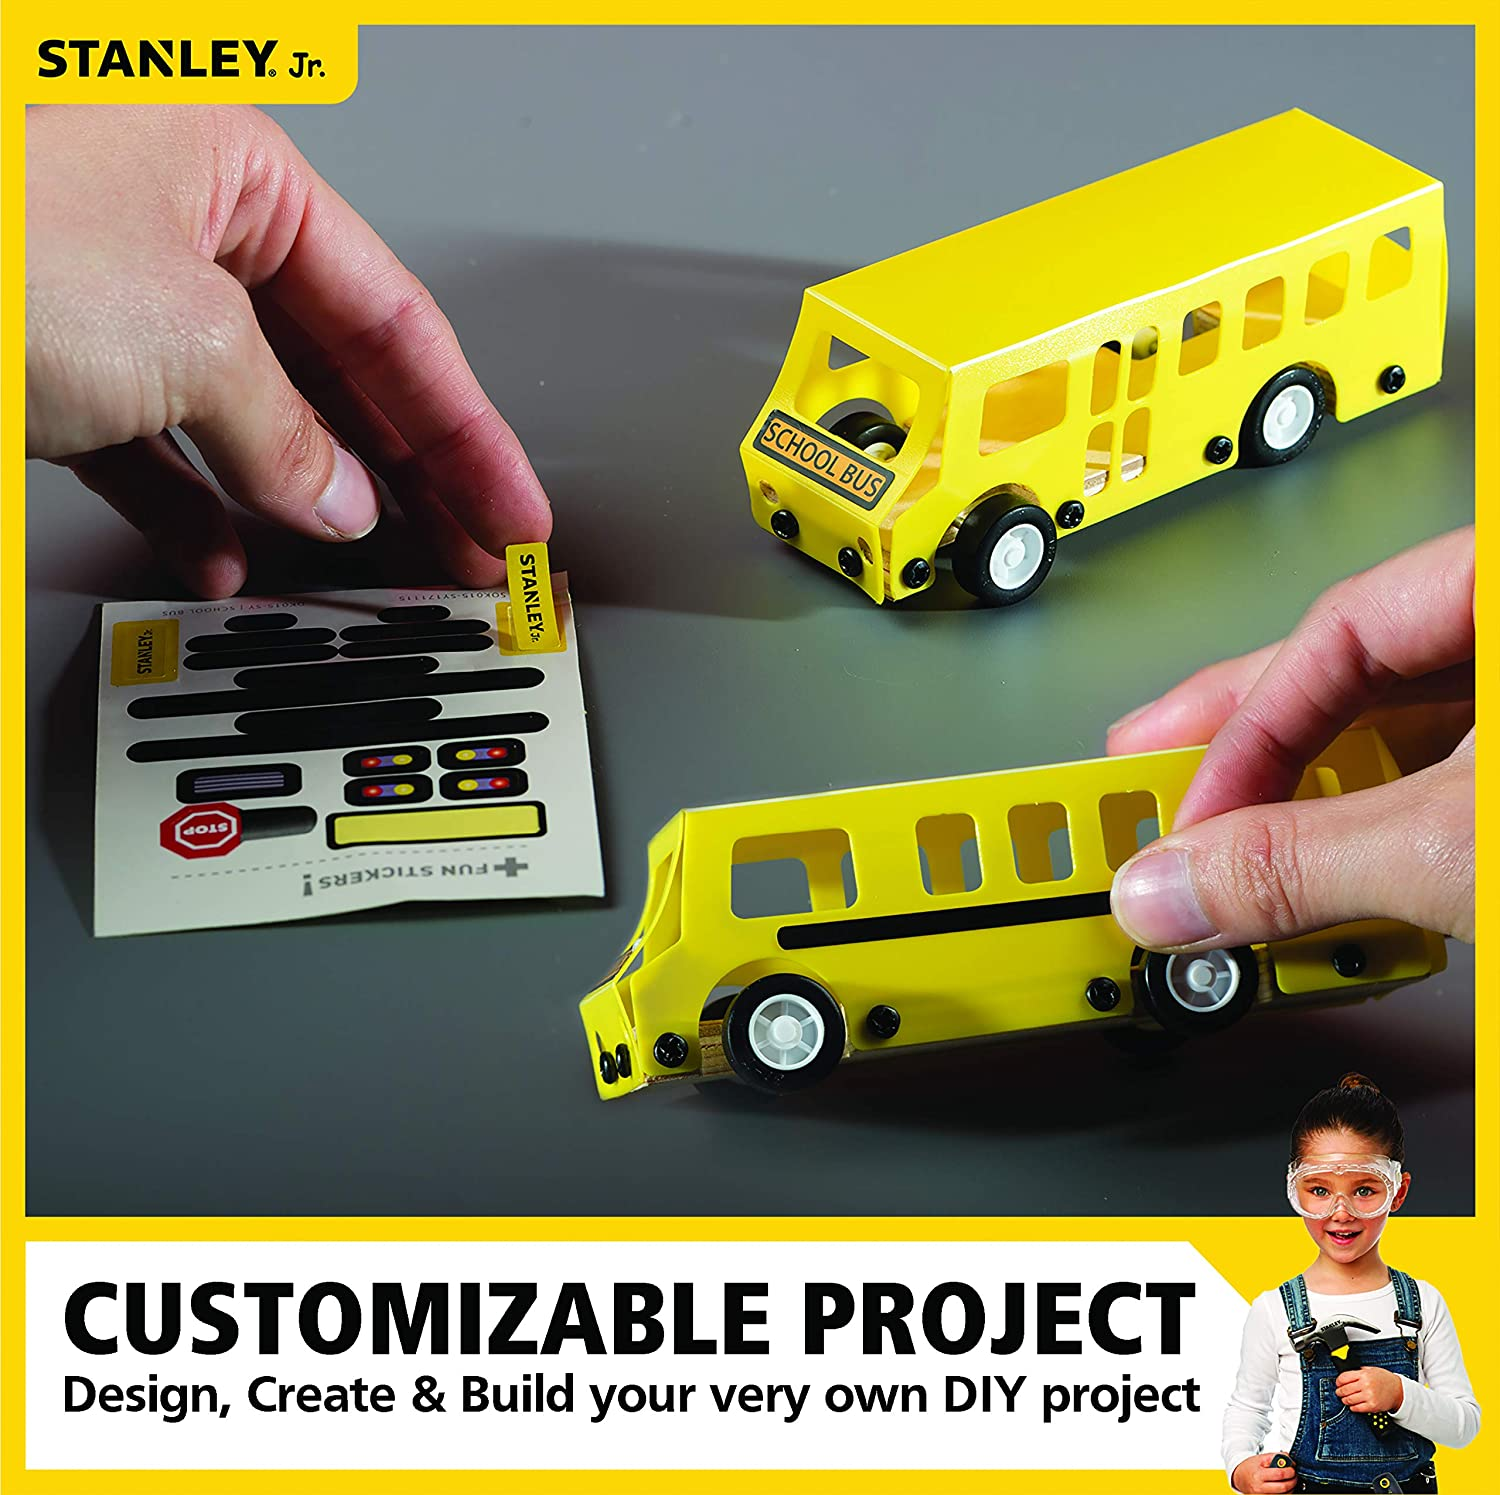 Stanley Jr DIY Assemble Toy Learning Engineering for Kids Yellow School Bus Toy Wood Craft Small Kit